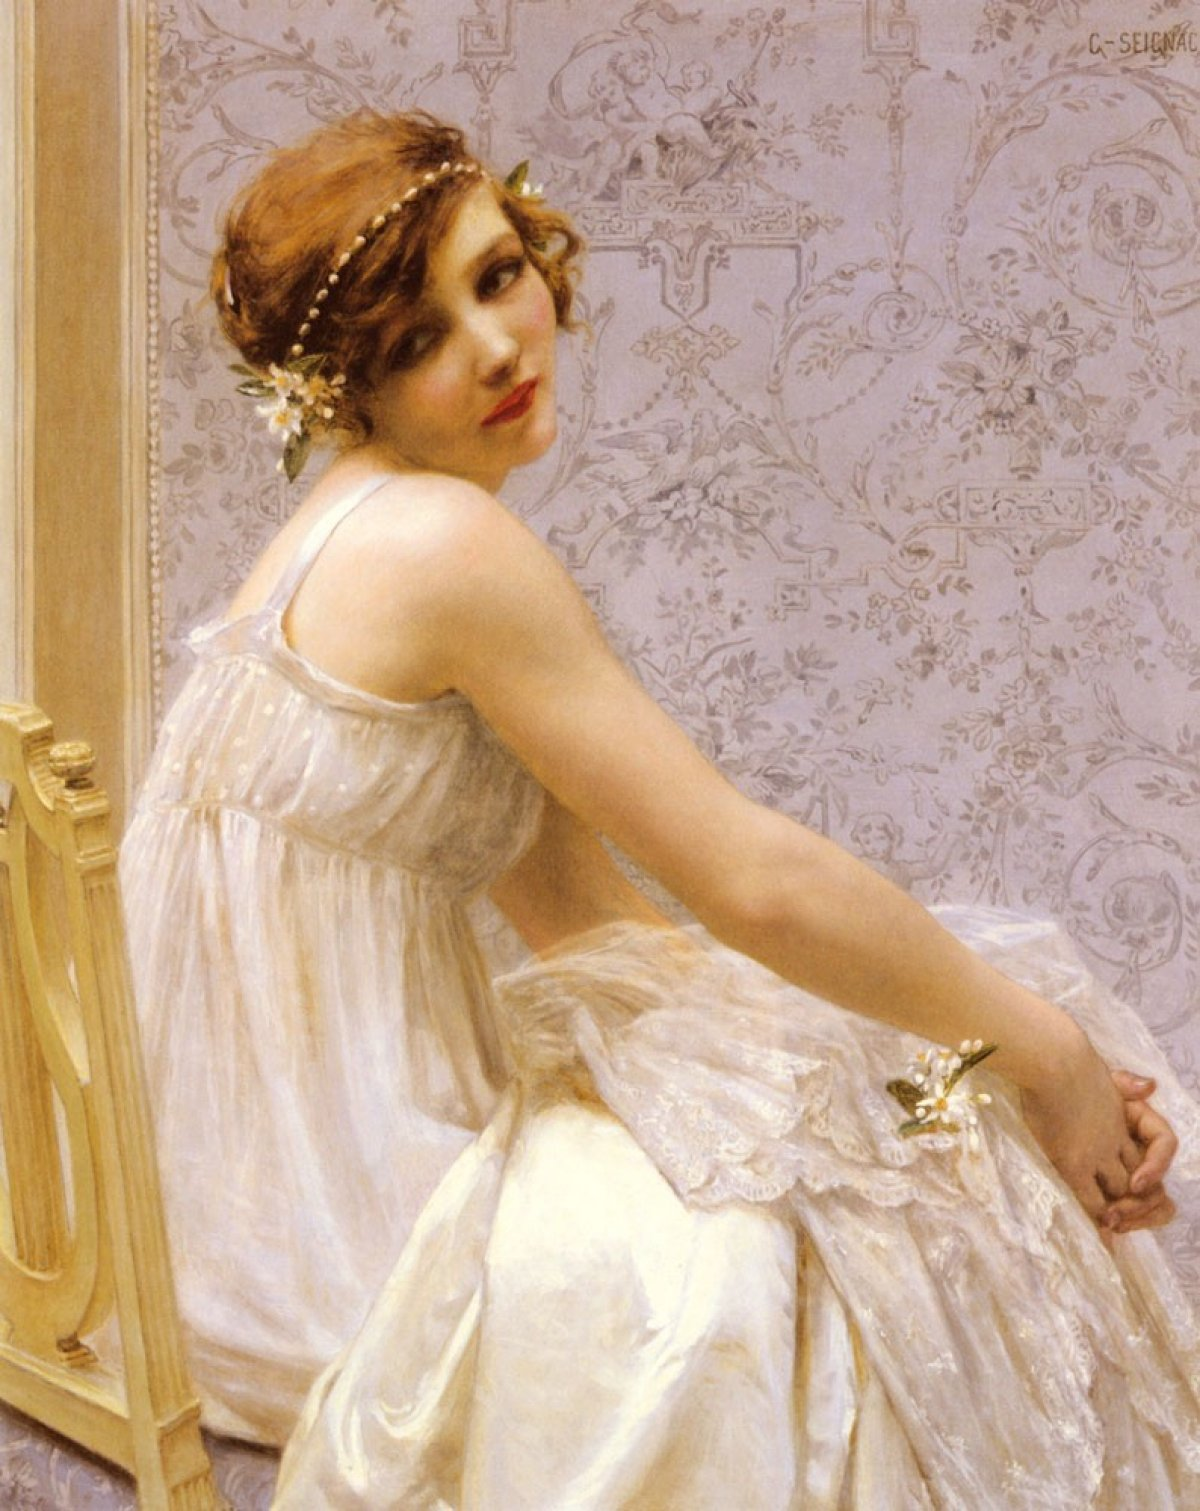 https://i0.wp.com/upload.wikimedia.org/wikipedia/commons/9/96/Guillaume_seignac_07.jpg